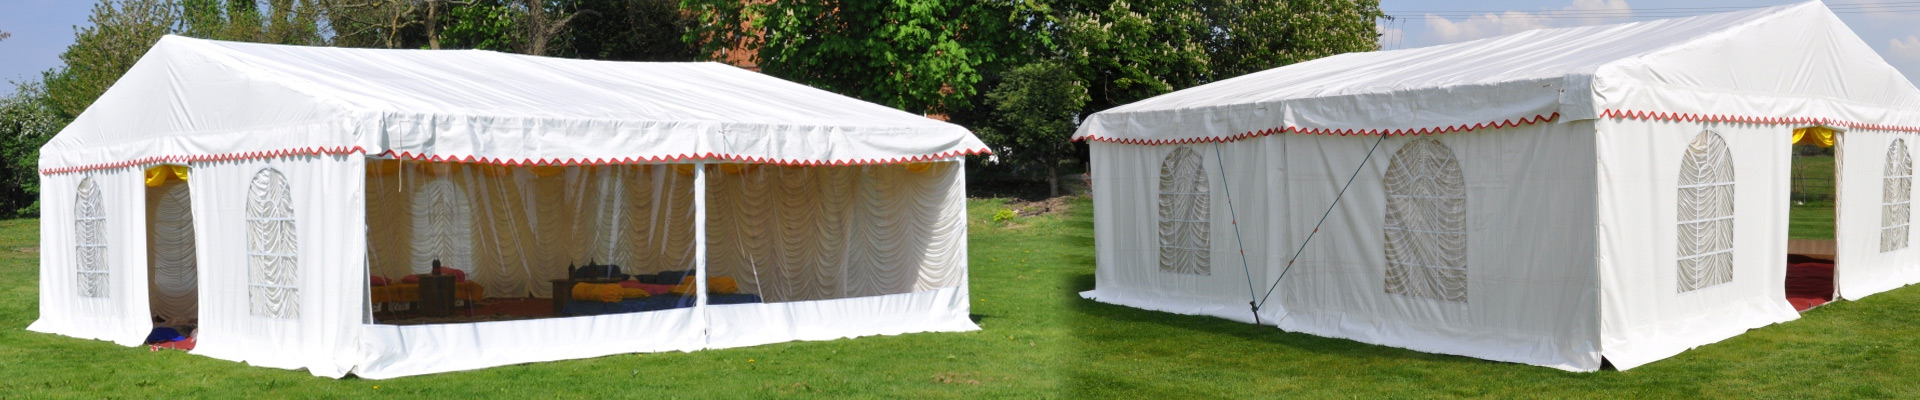 Marquee Hire Gallery & Chandelier and lights | somel